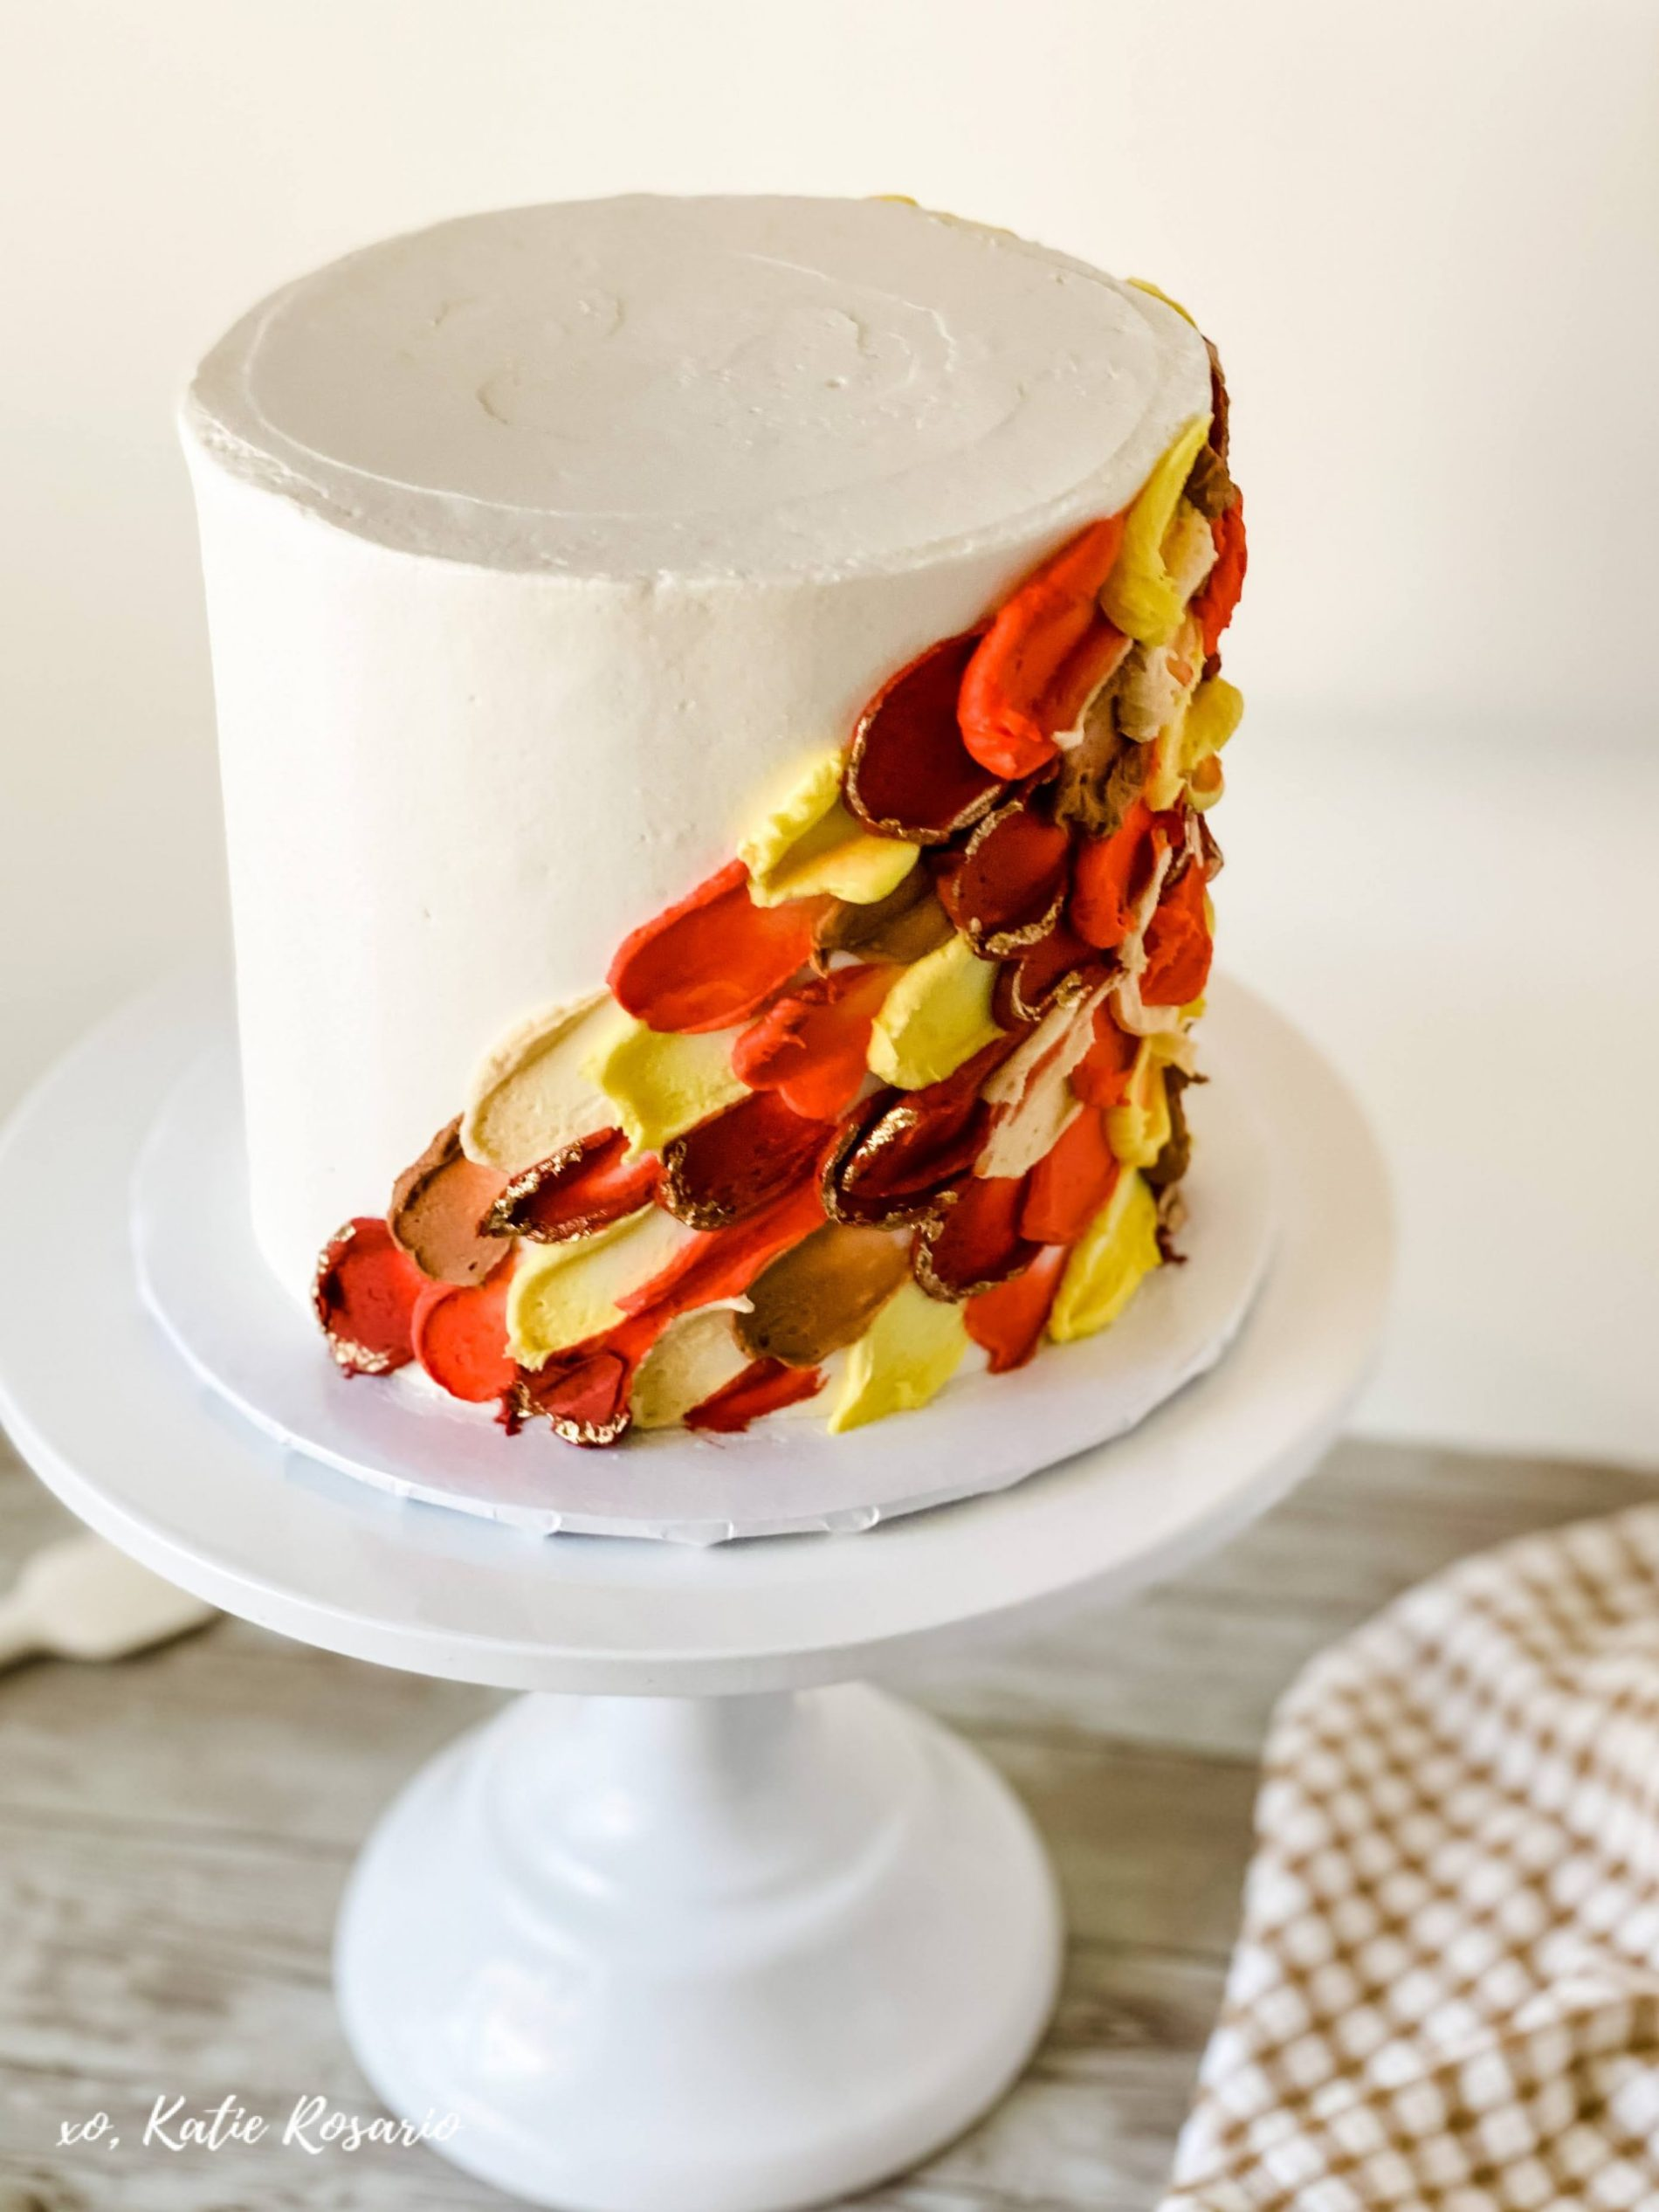 Learn how to make this insanely beautiful Autumn Painted Buttercream Cake. Painted buttercream has to be my newest cake obsession. This cake trend is so beautiful and fun to make at home. This Autumn Painted Buttercream Cake is made with light and fluffy vanilla cake layers and creamy vanilla buttercream. Here's how to make this Autumn Painted Buttercream Cake! #xokatierosario #katierosariocakes #paintedbuttercream #fallcakeideas